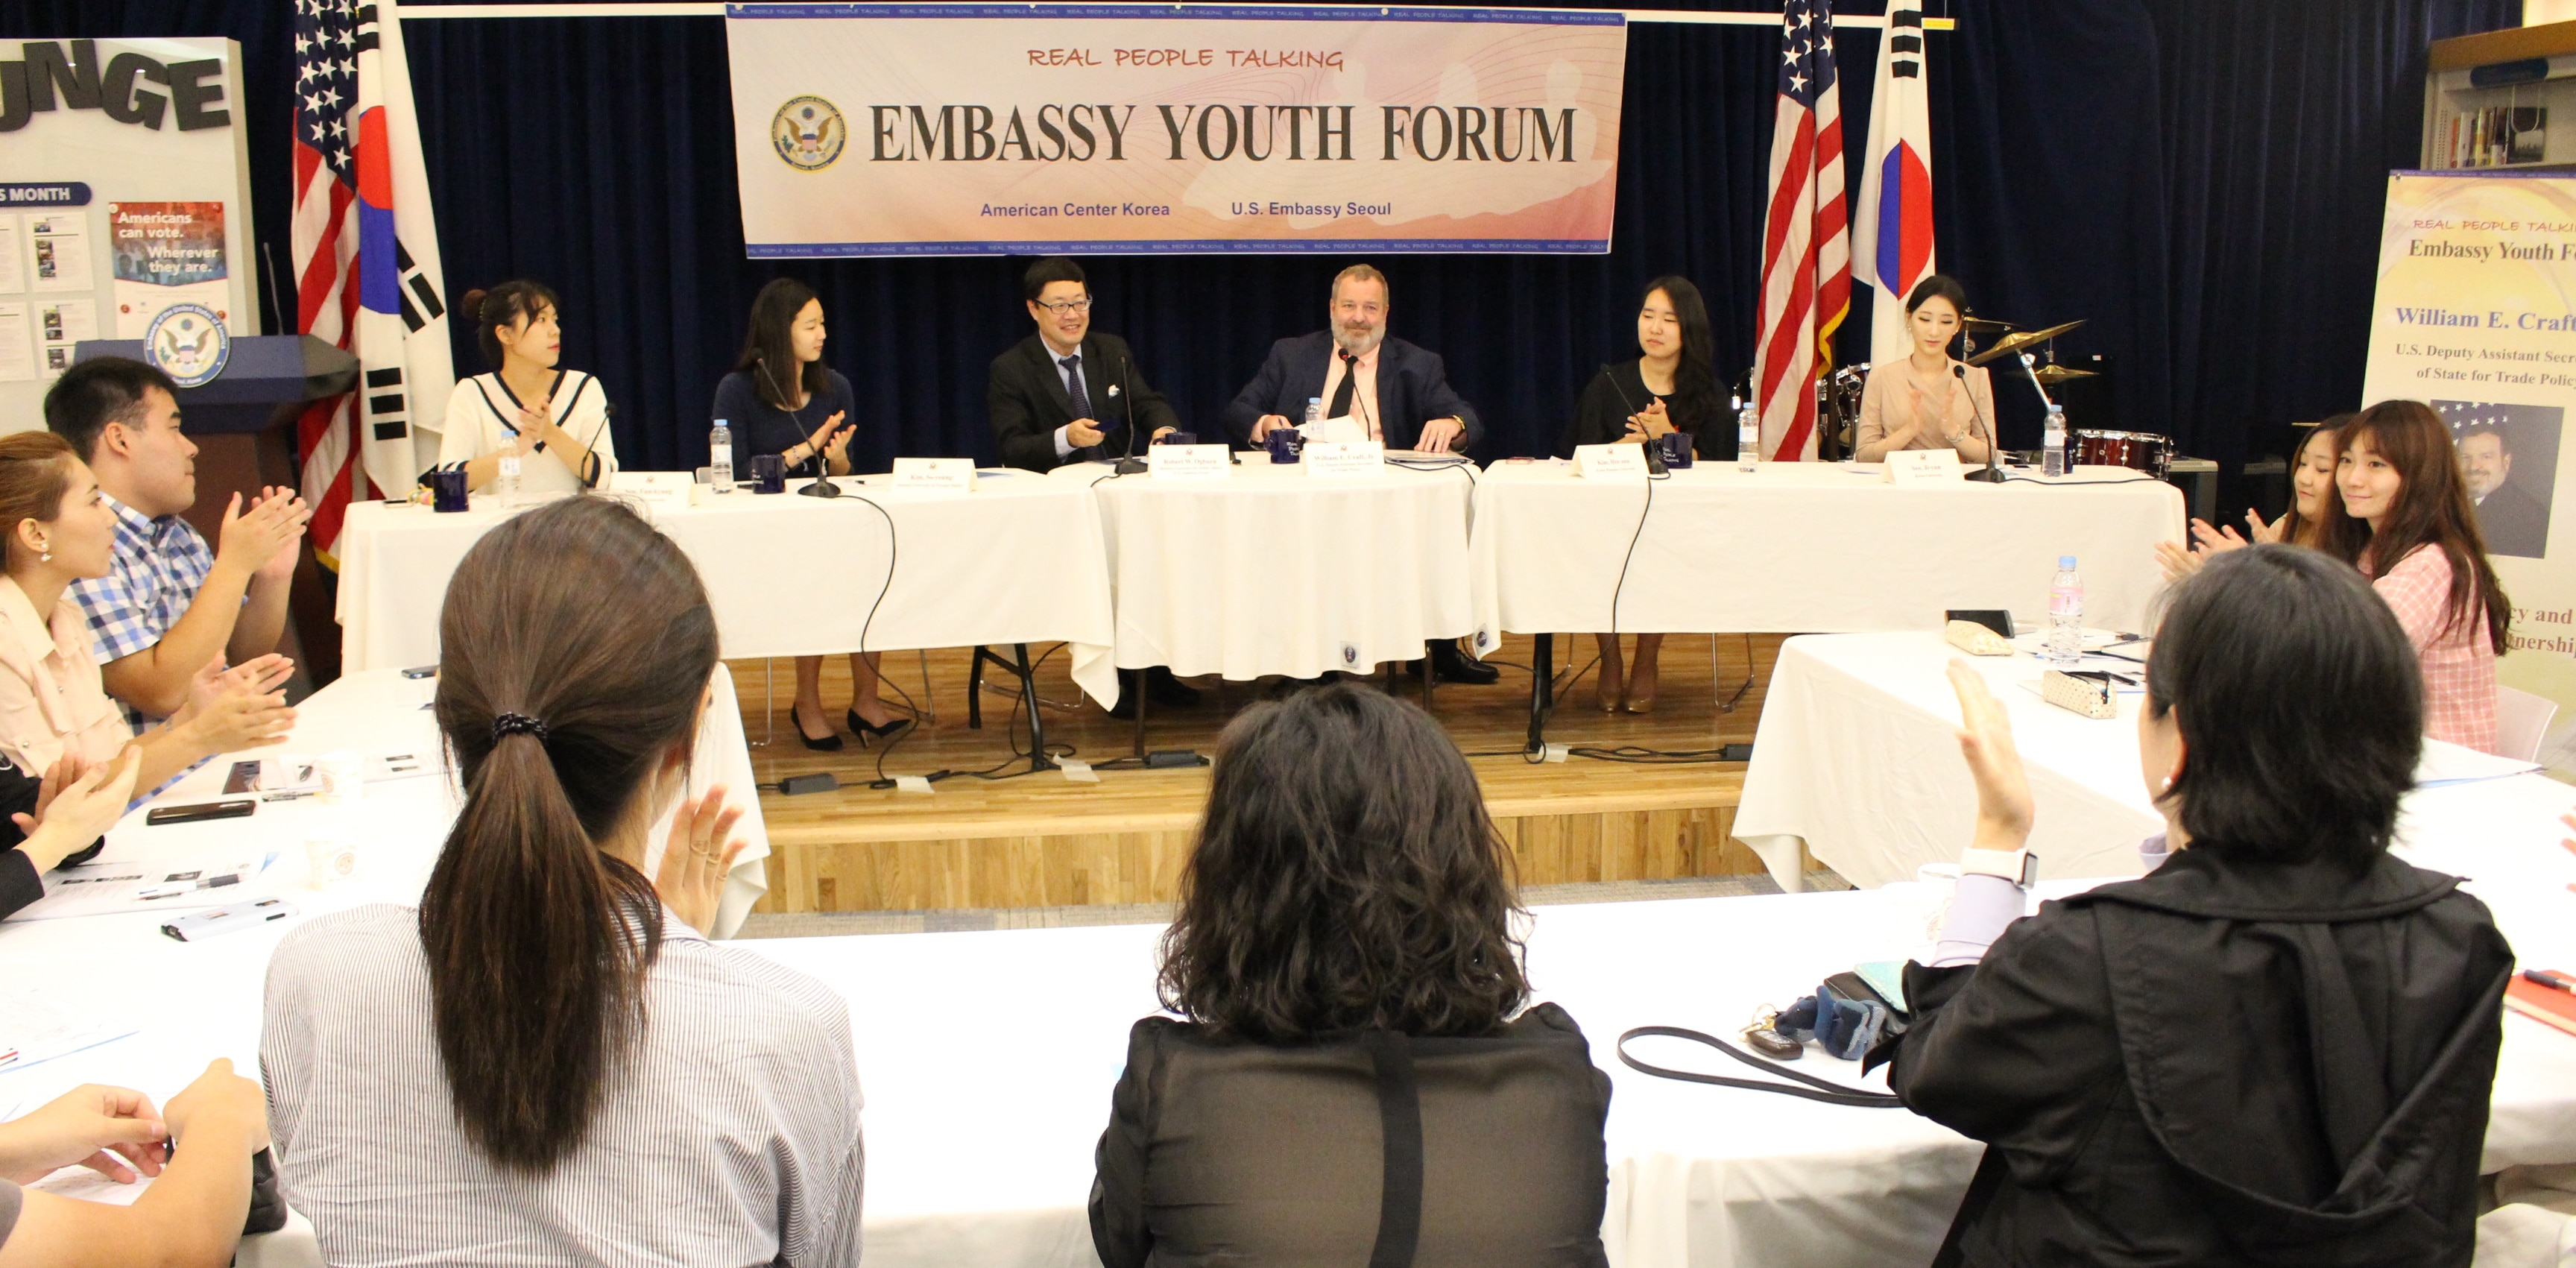 Embassy Youth Forum - Real People Talking with William E. Craft, Jr., U.S. Deputy Assistant Secretary of State for Trade Policy